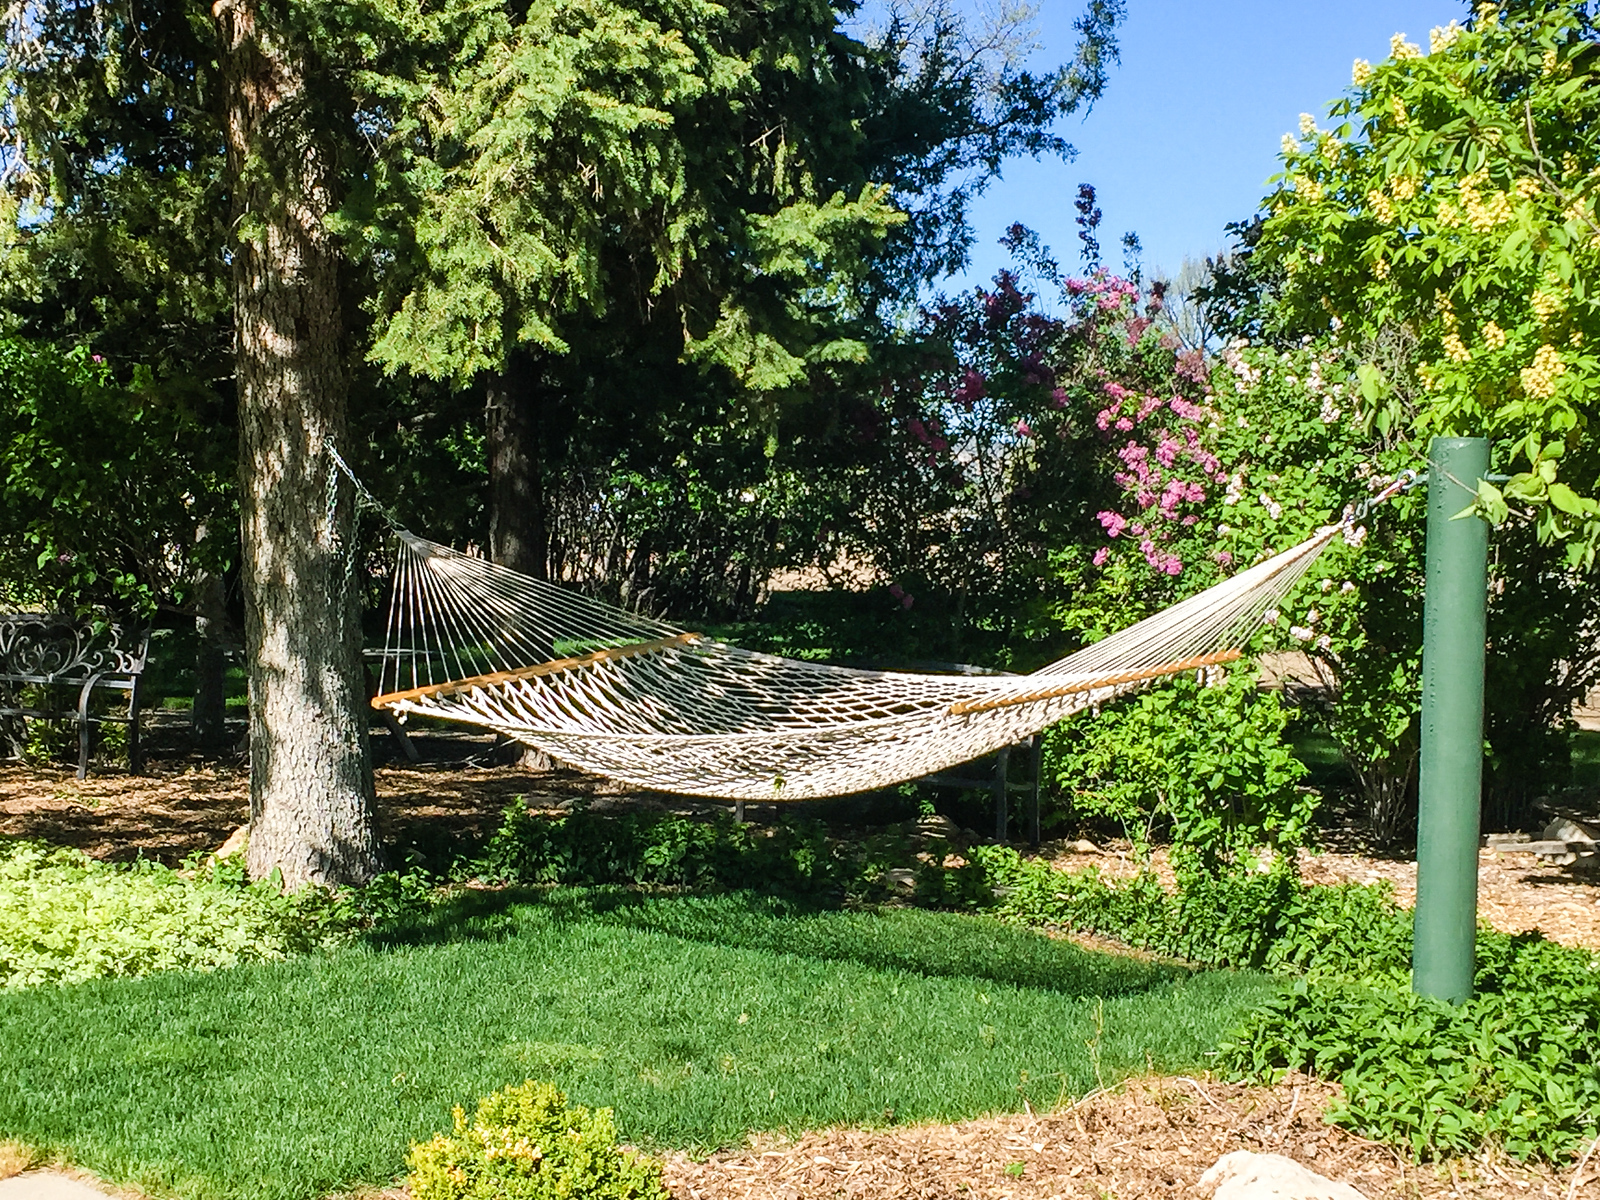 Hammock hanging from a tree in the garden at Barn Anew Bed and Breakfast.